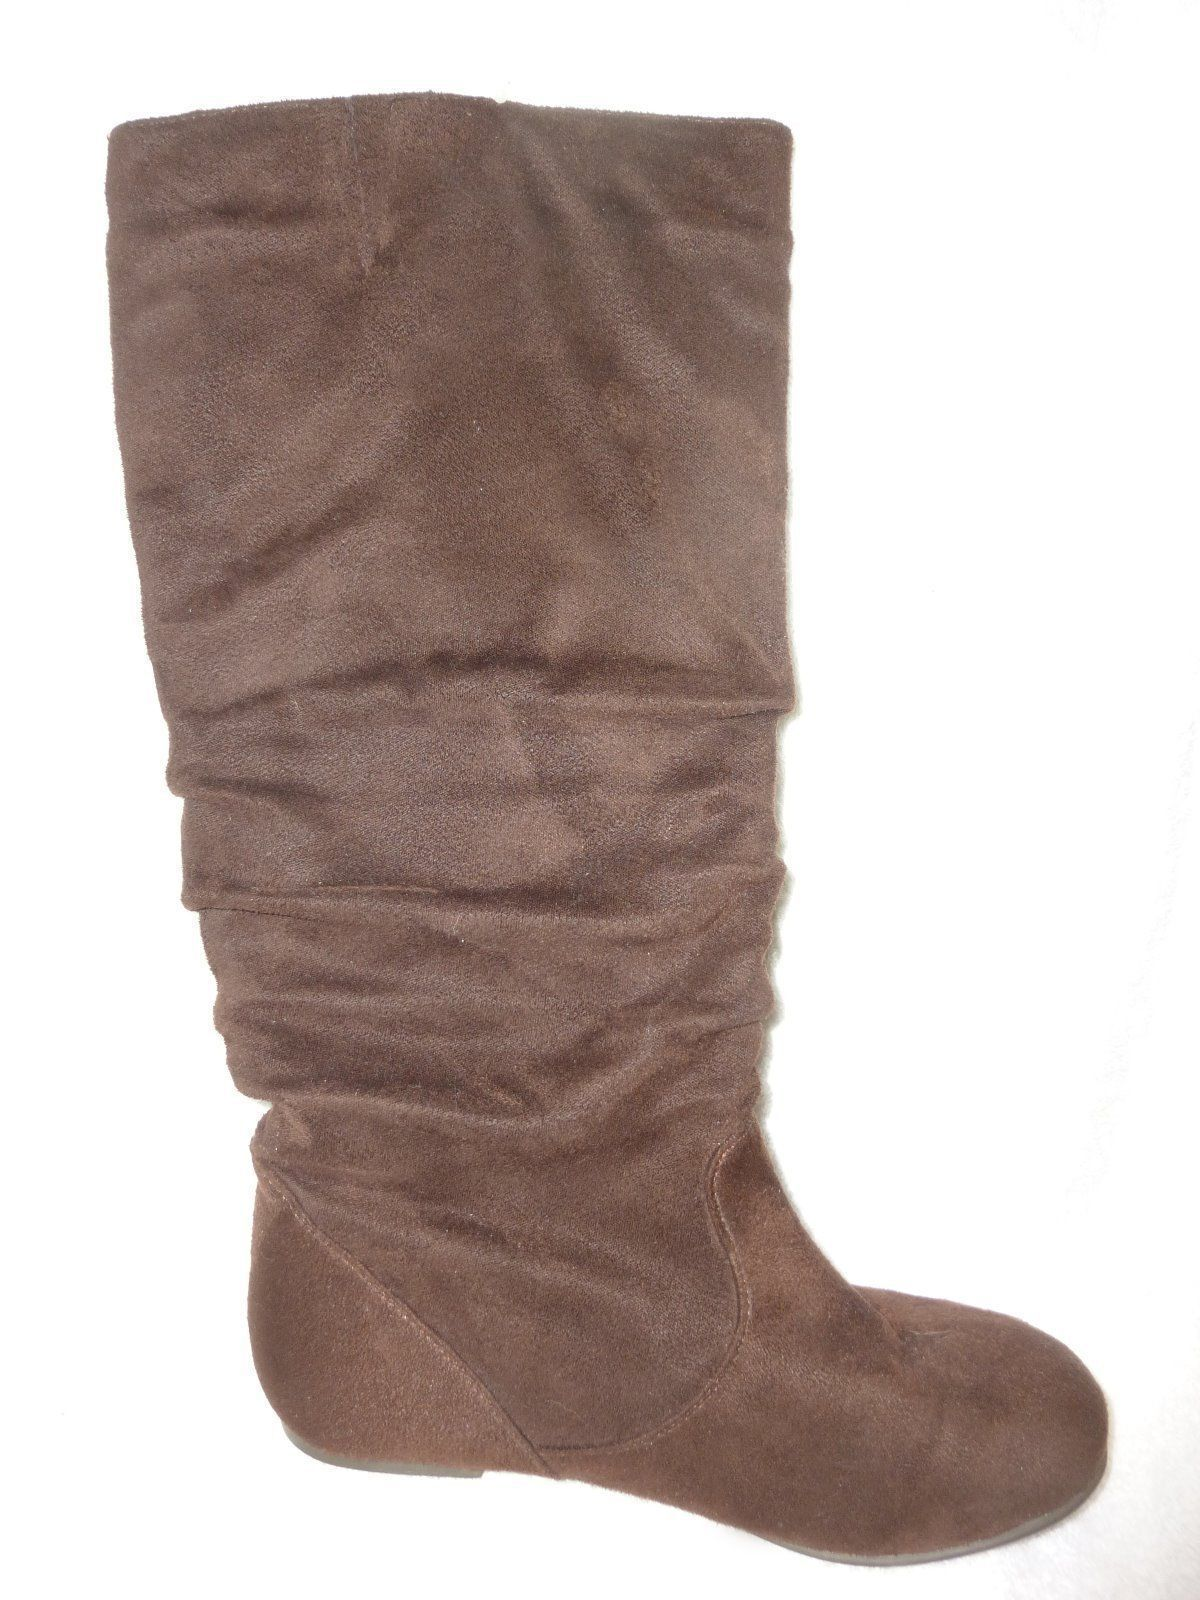 top moda brown micro suede relaxed cozy boots size 6 5 b